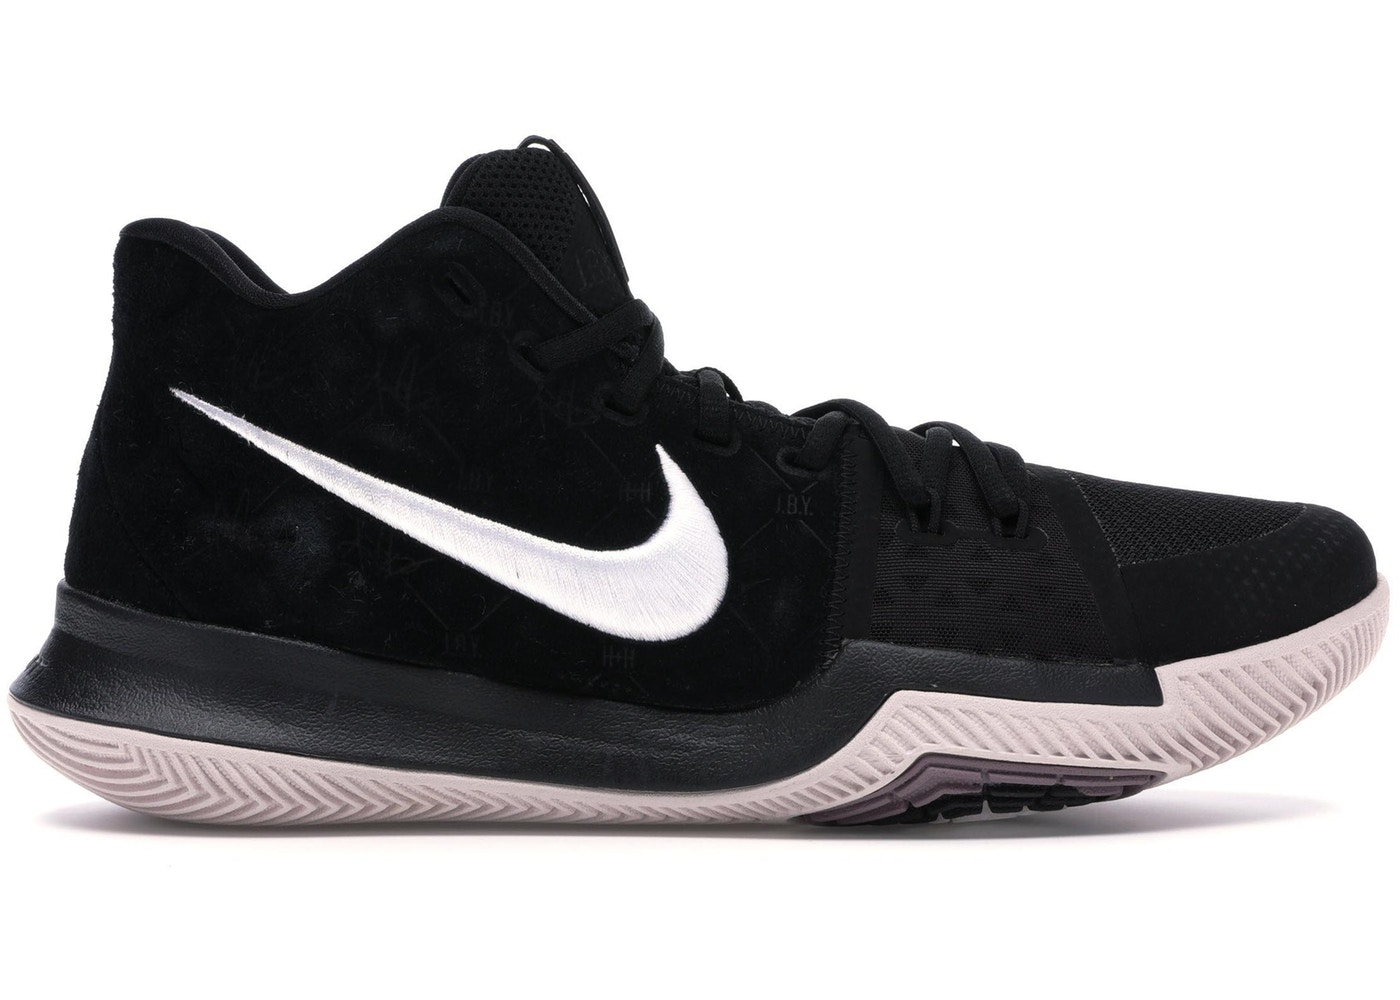 official photos 07986 80dfa Kyrie 3 Black Suede - 852395-010